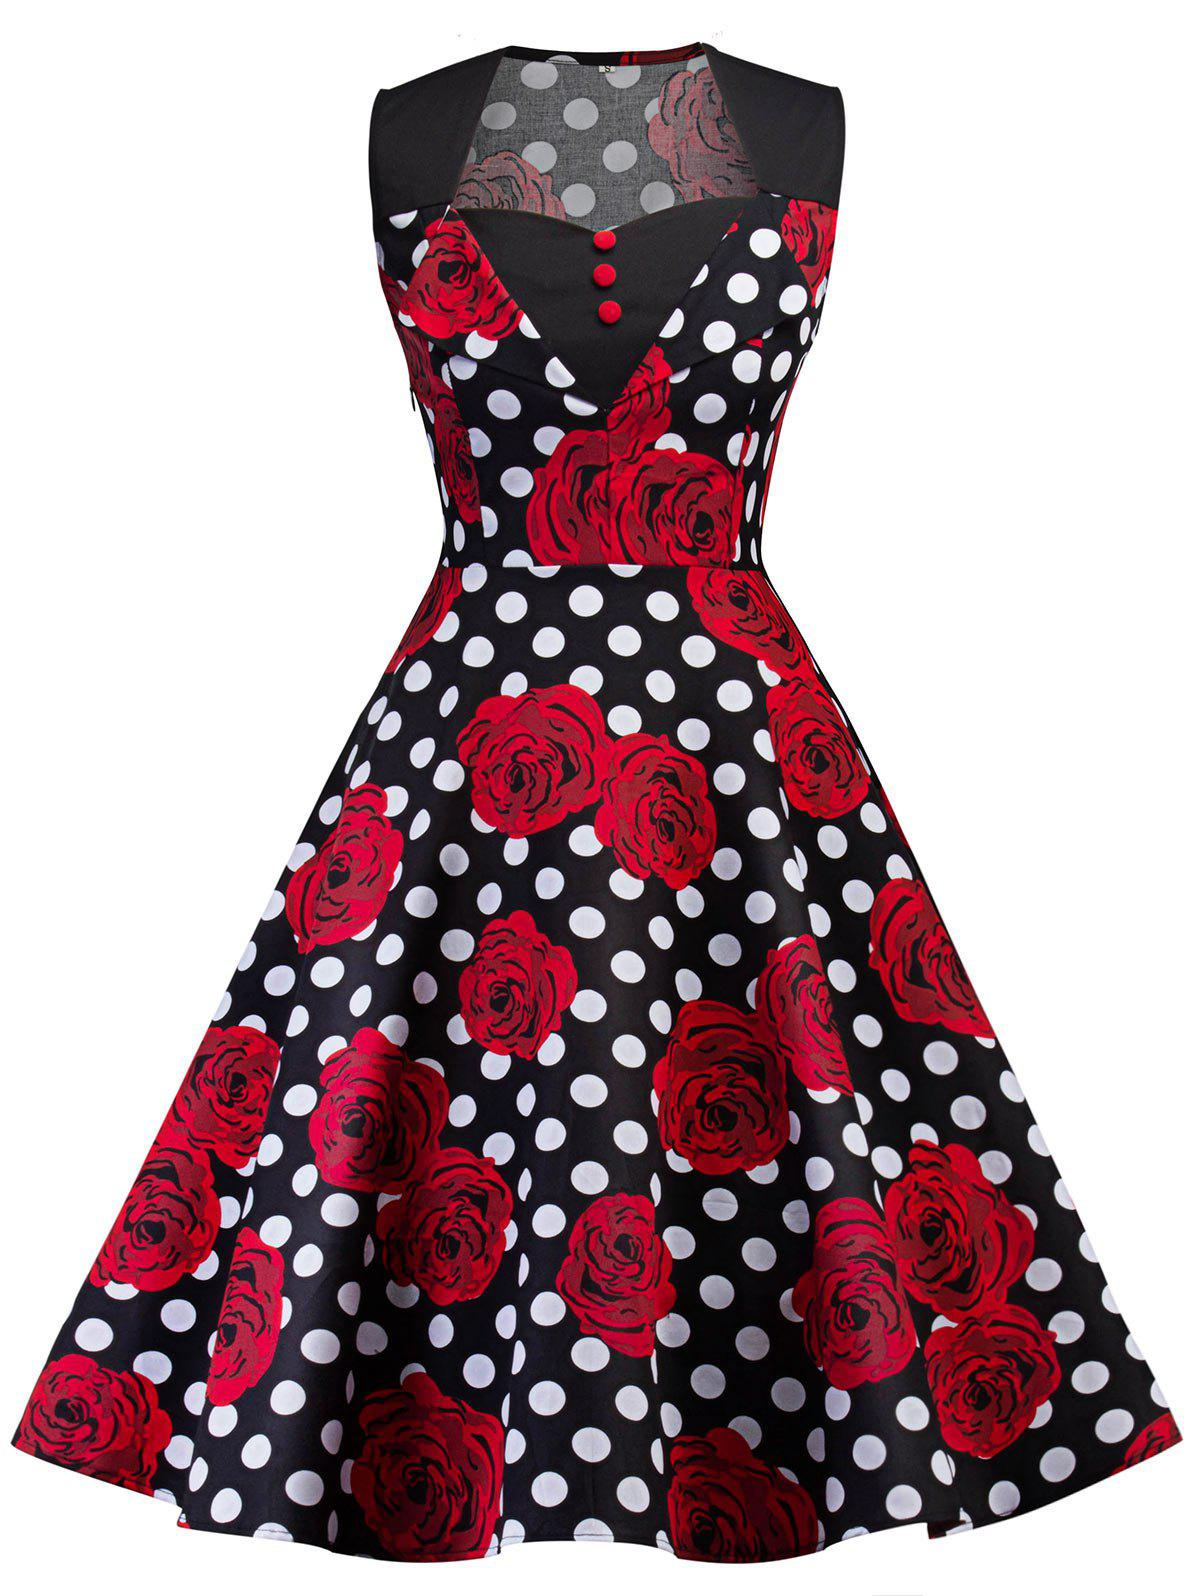 Vintage Polka Dot Floral Print Pin Up DressWOMEN<br><br>Size: 2XL; Color: BLACK; Style: Vintage; Material: Polyester,Spandex; Silhouette: A-Line; Dress Type: Cheongsam; Dresses Length: Mid-Calf; Neckline: Sweetheart Neck; Sleeve Length: Sleeveless; Pattern Type: Floral,Polka Dot; With Belt: No; Season: Fall,Spring; Weight: 0.3500kg; Package Contents: 1 x Dress;